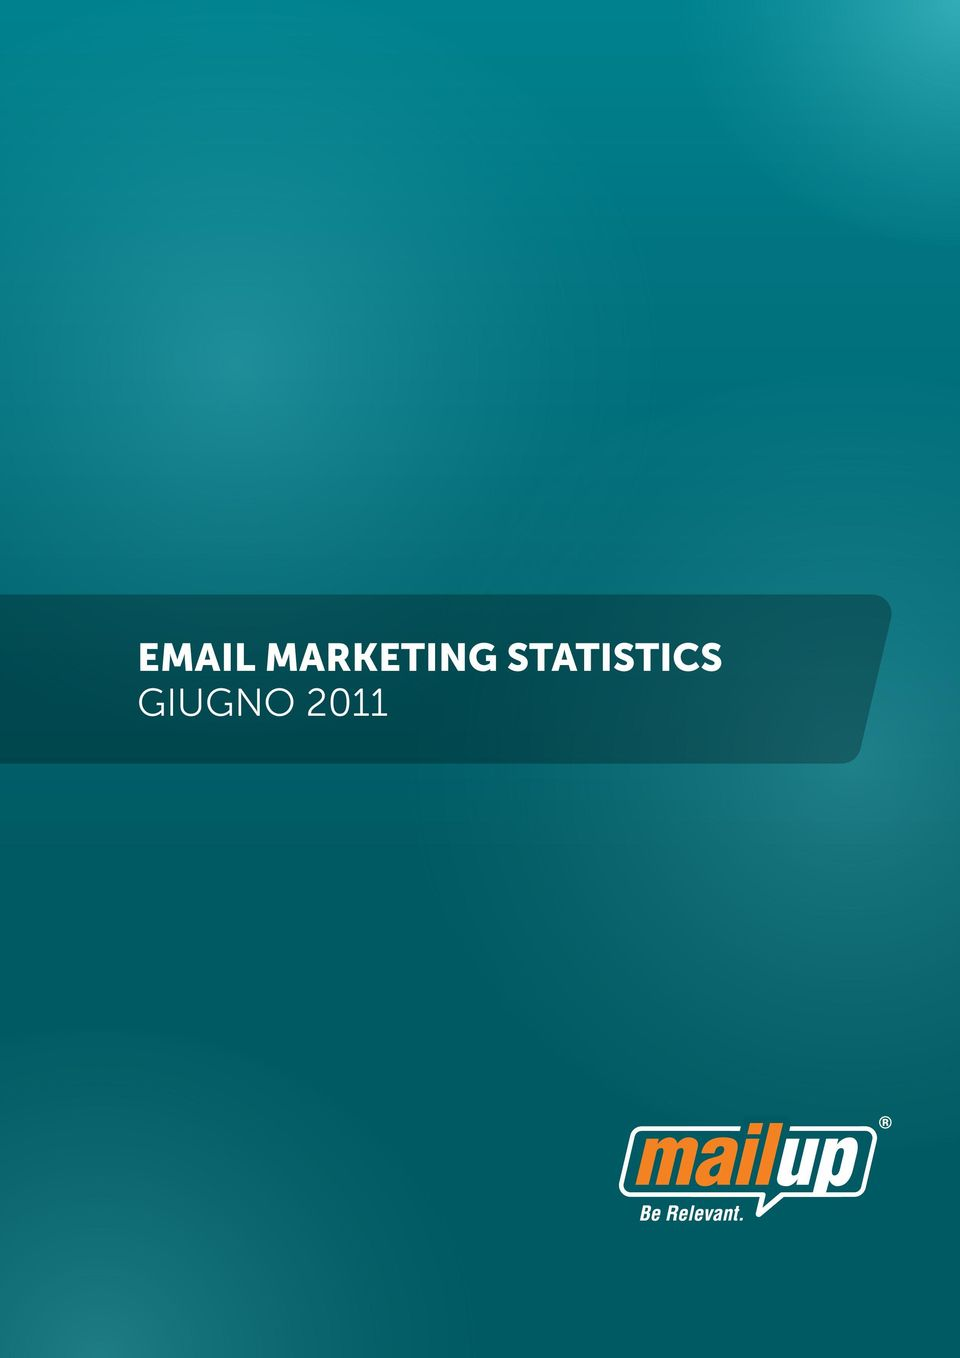 2011 Email marketing